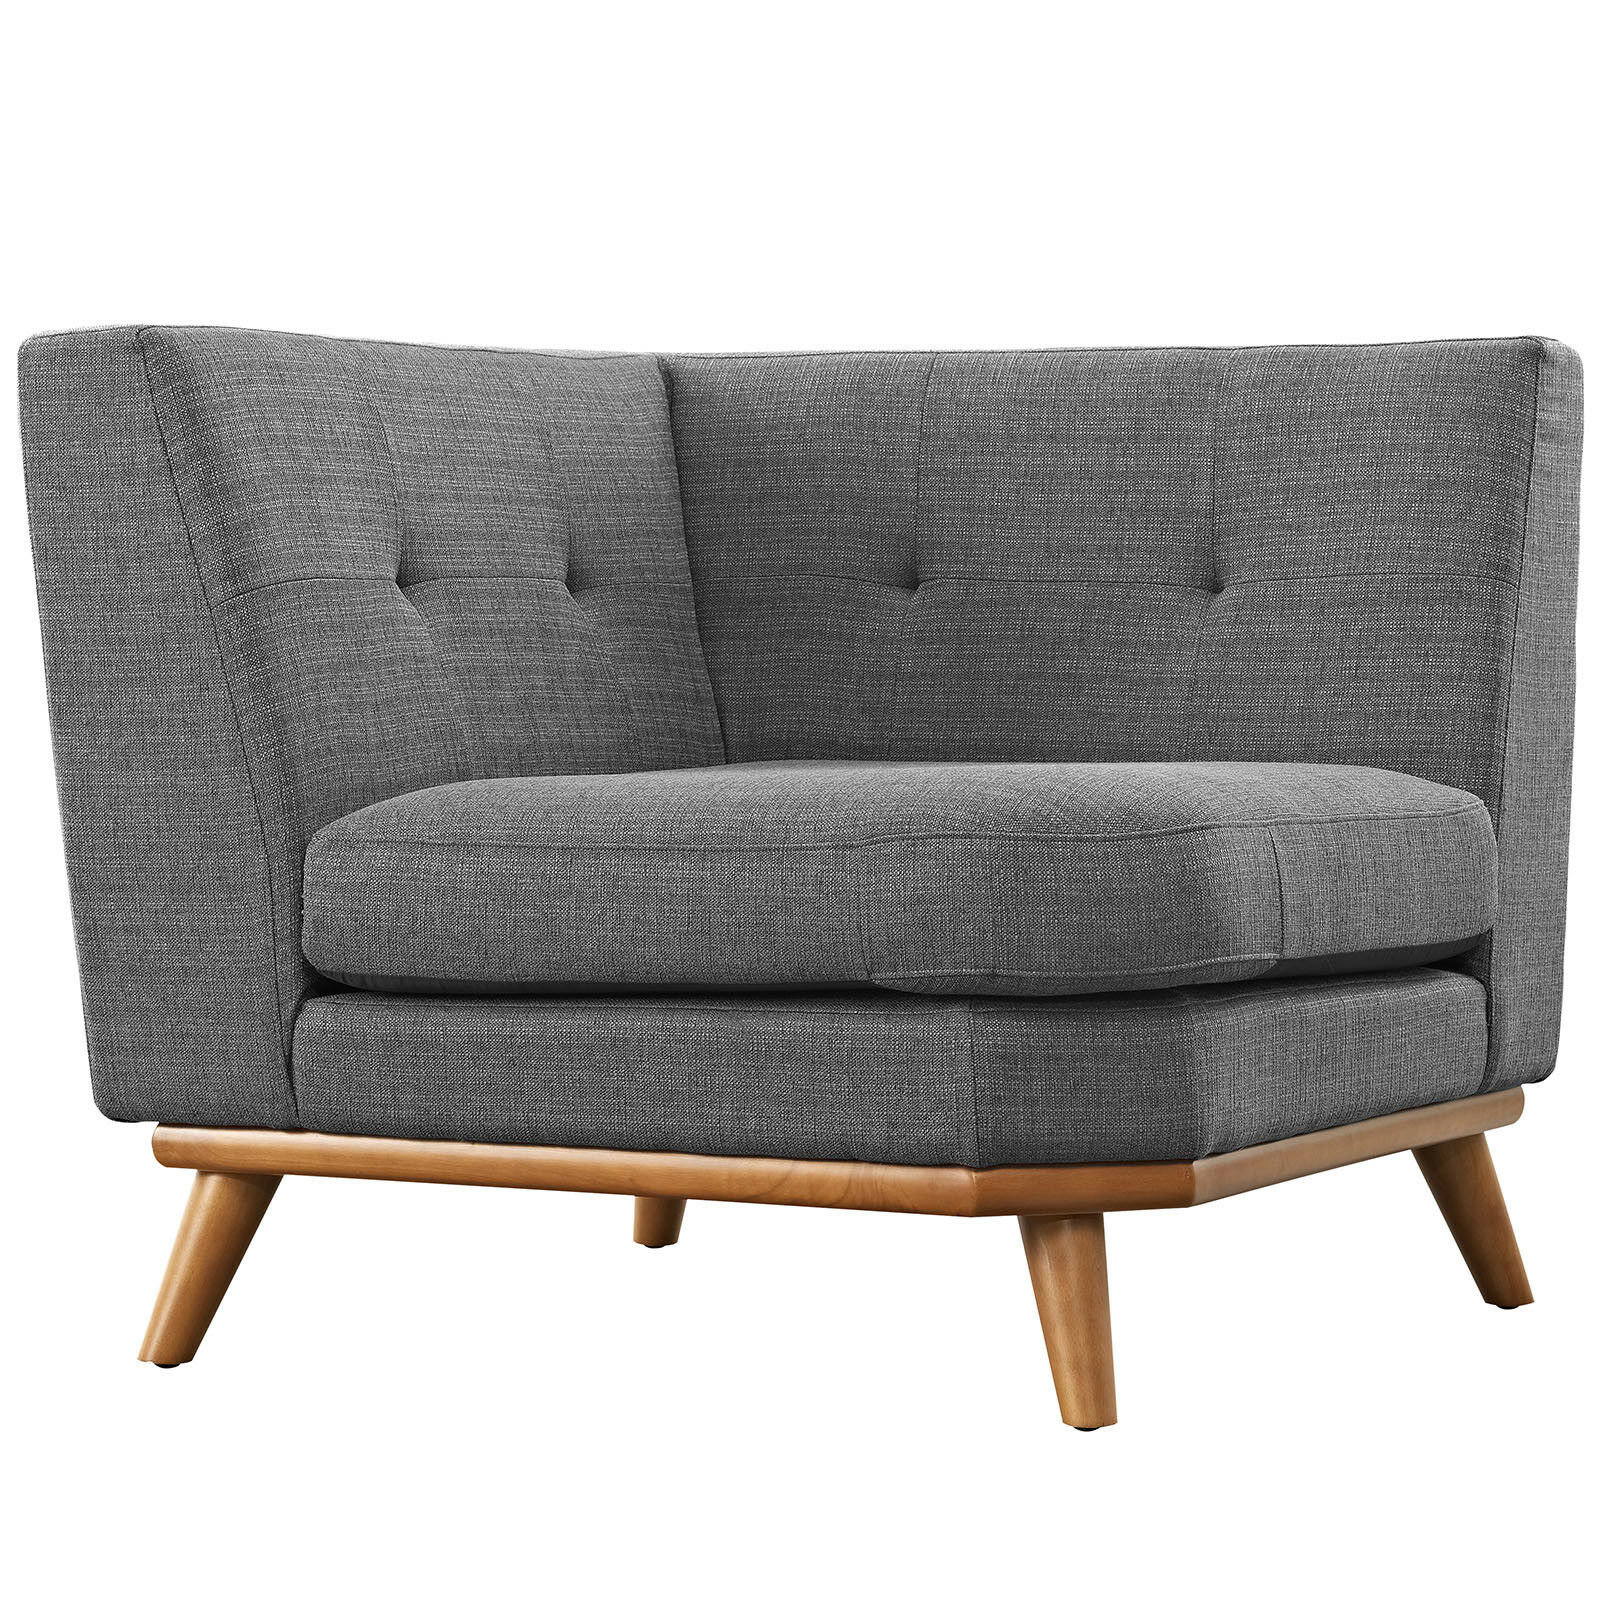 Modway Engage Mid Century Modern Upholstered Fabric Corner Sofa In Gray Ebay